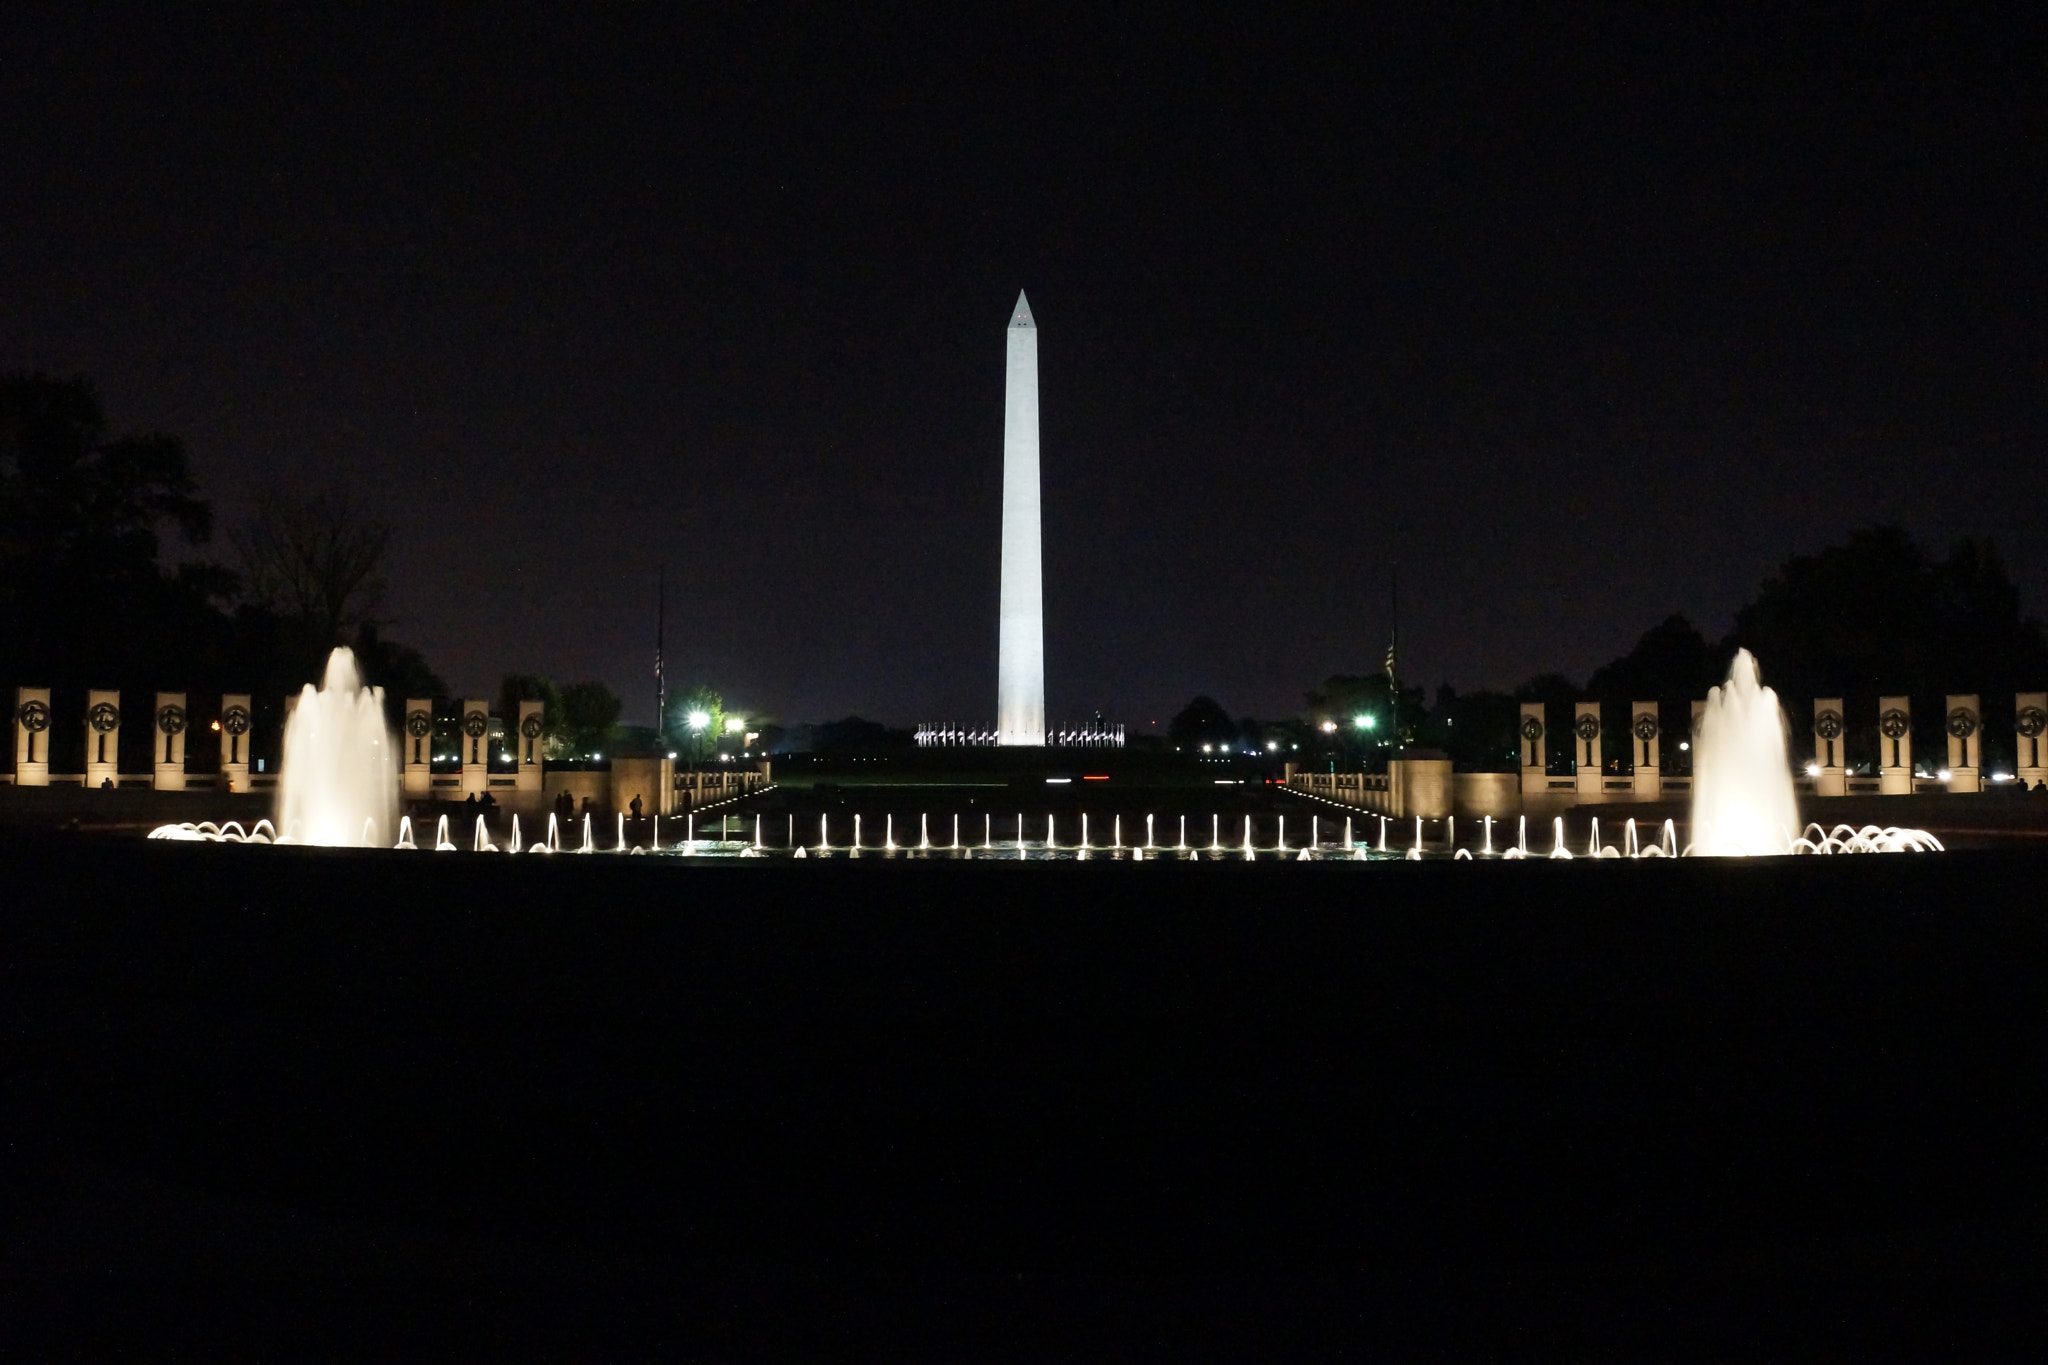 Photograph Monuments at night by Jason Enclade on 500px